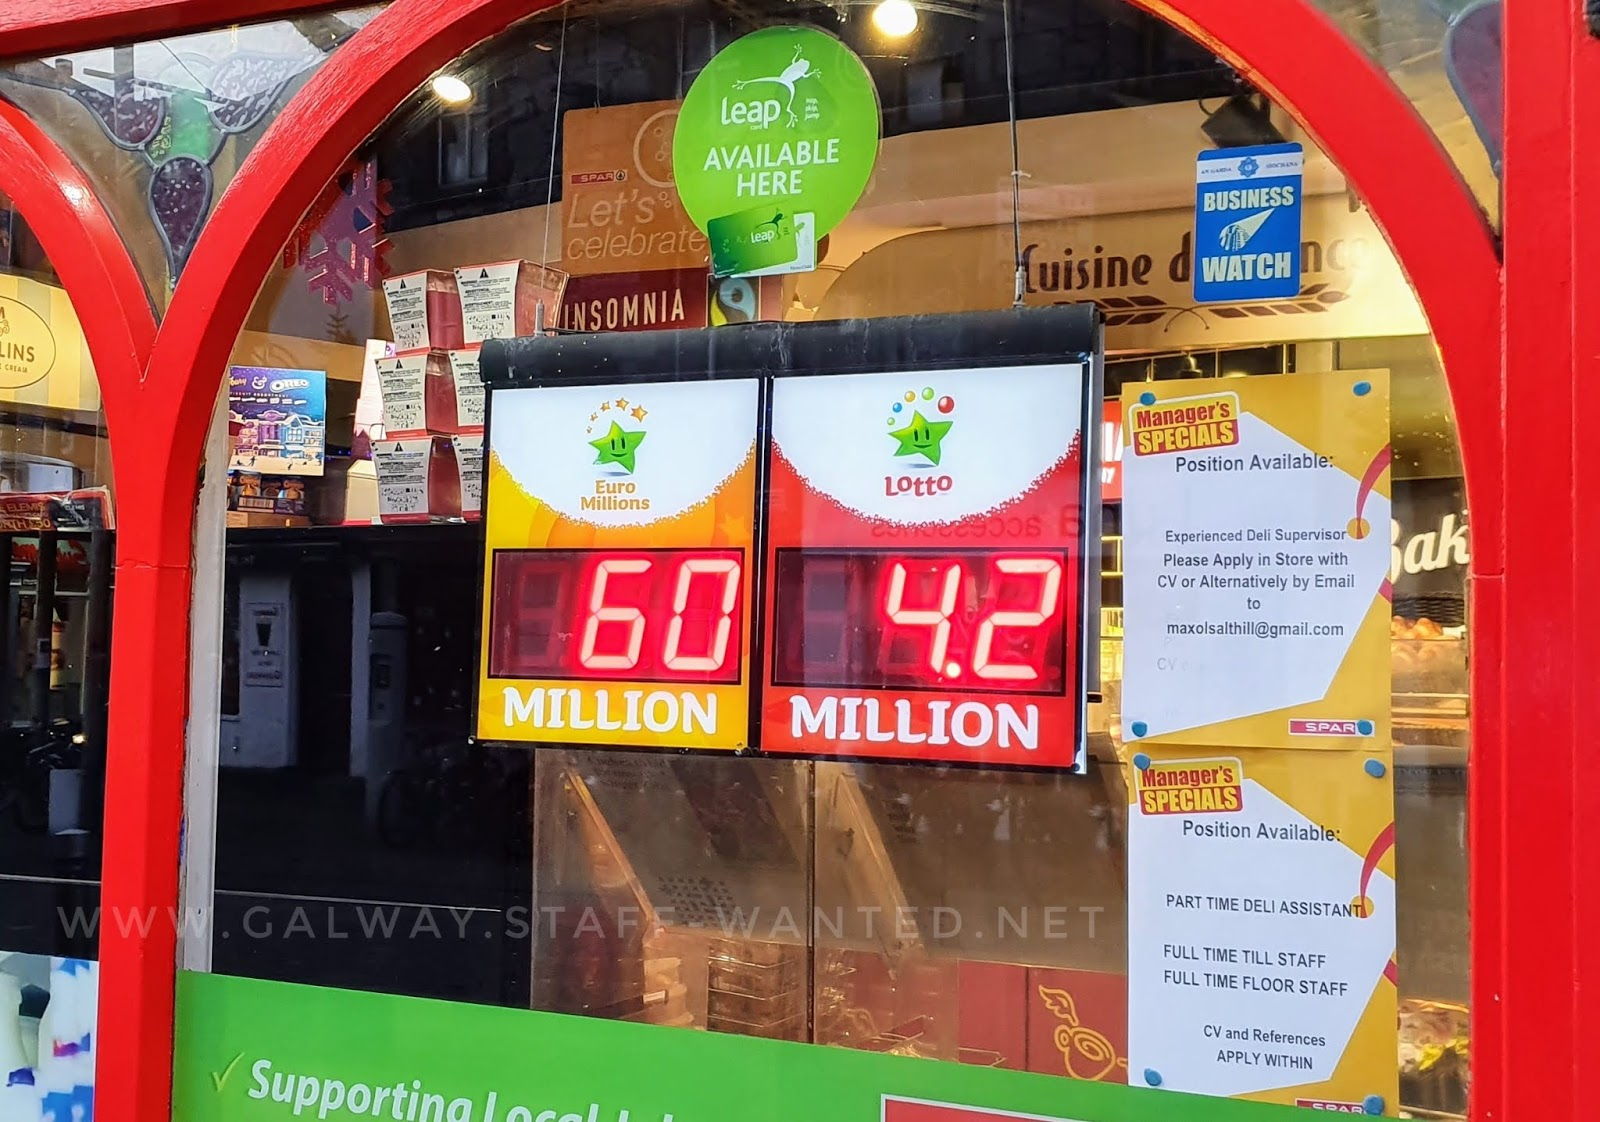 Spar shop window with a Business Watch member sticker, Leap card available here sign, and red LED-based Lotto prize amount signs advising the current prize pool for both Euromillions (60 million) and the Irish Lotto (4.2 milling)